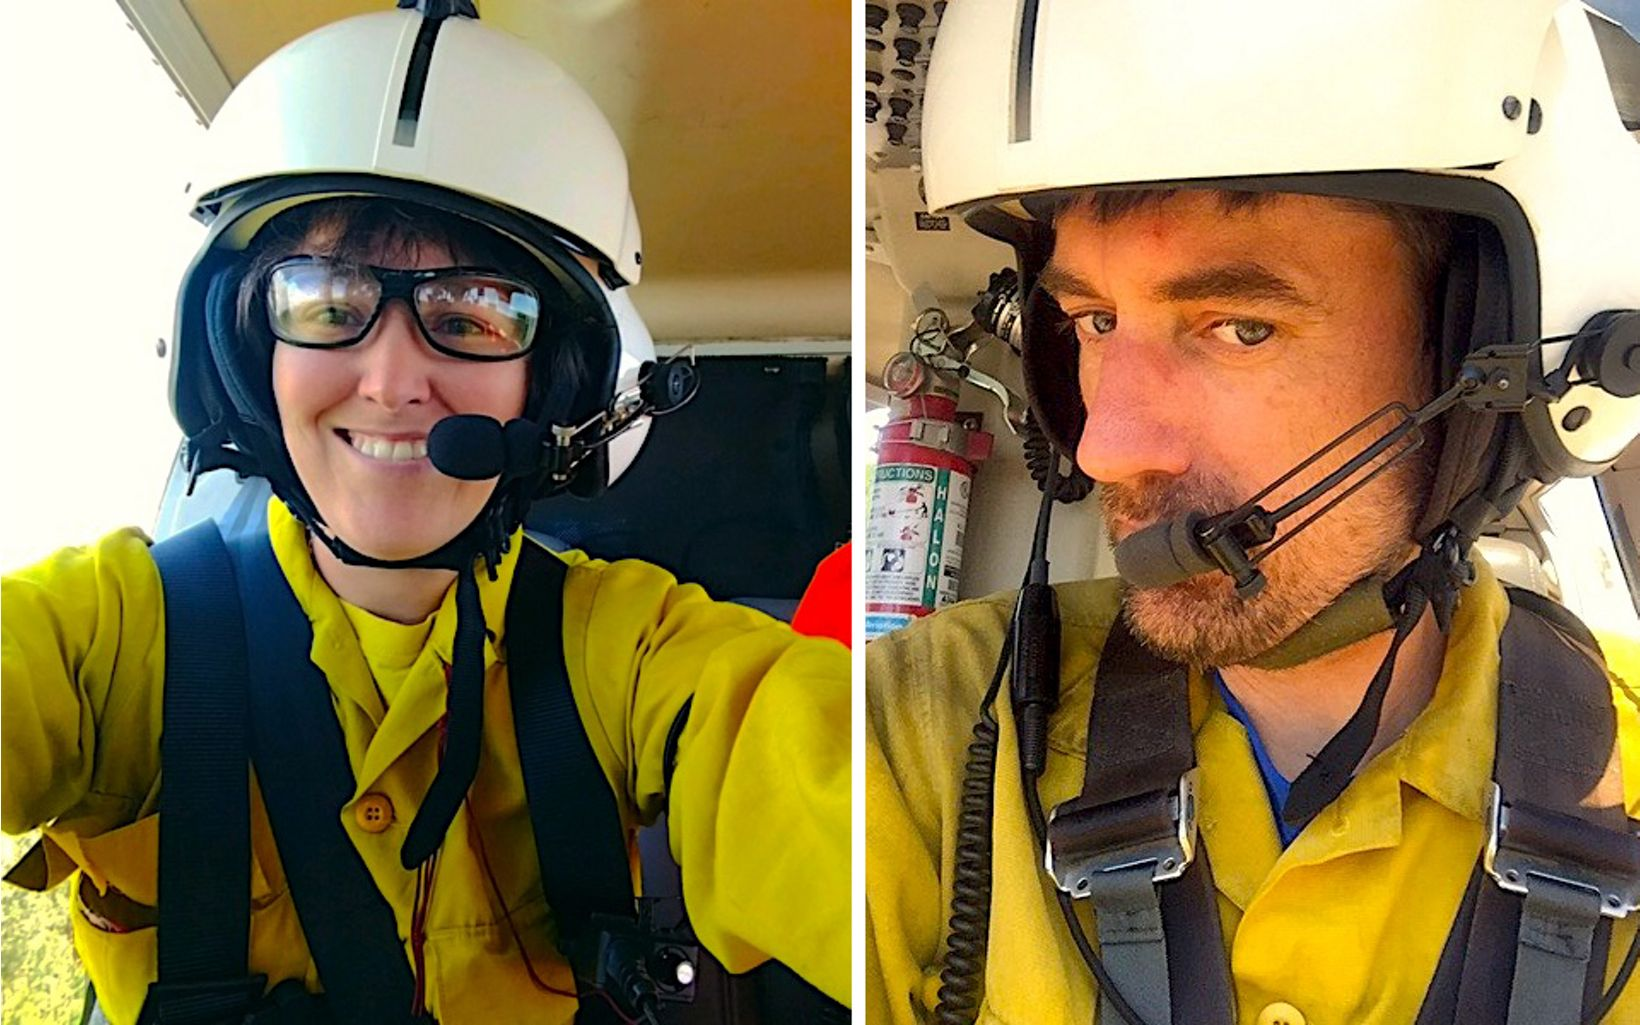 TNC's Nikole Simmons and Sam Lindblom snap selfies from the air.